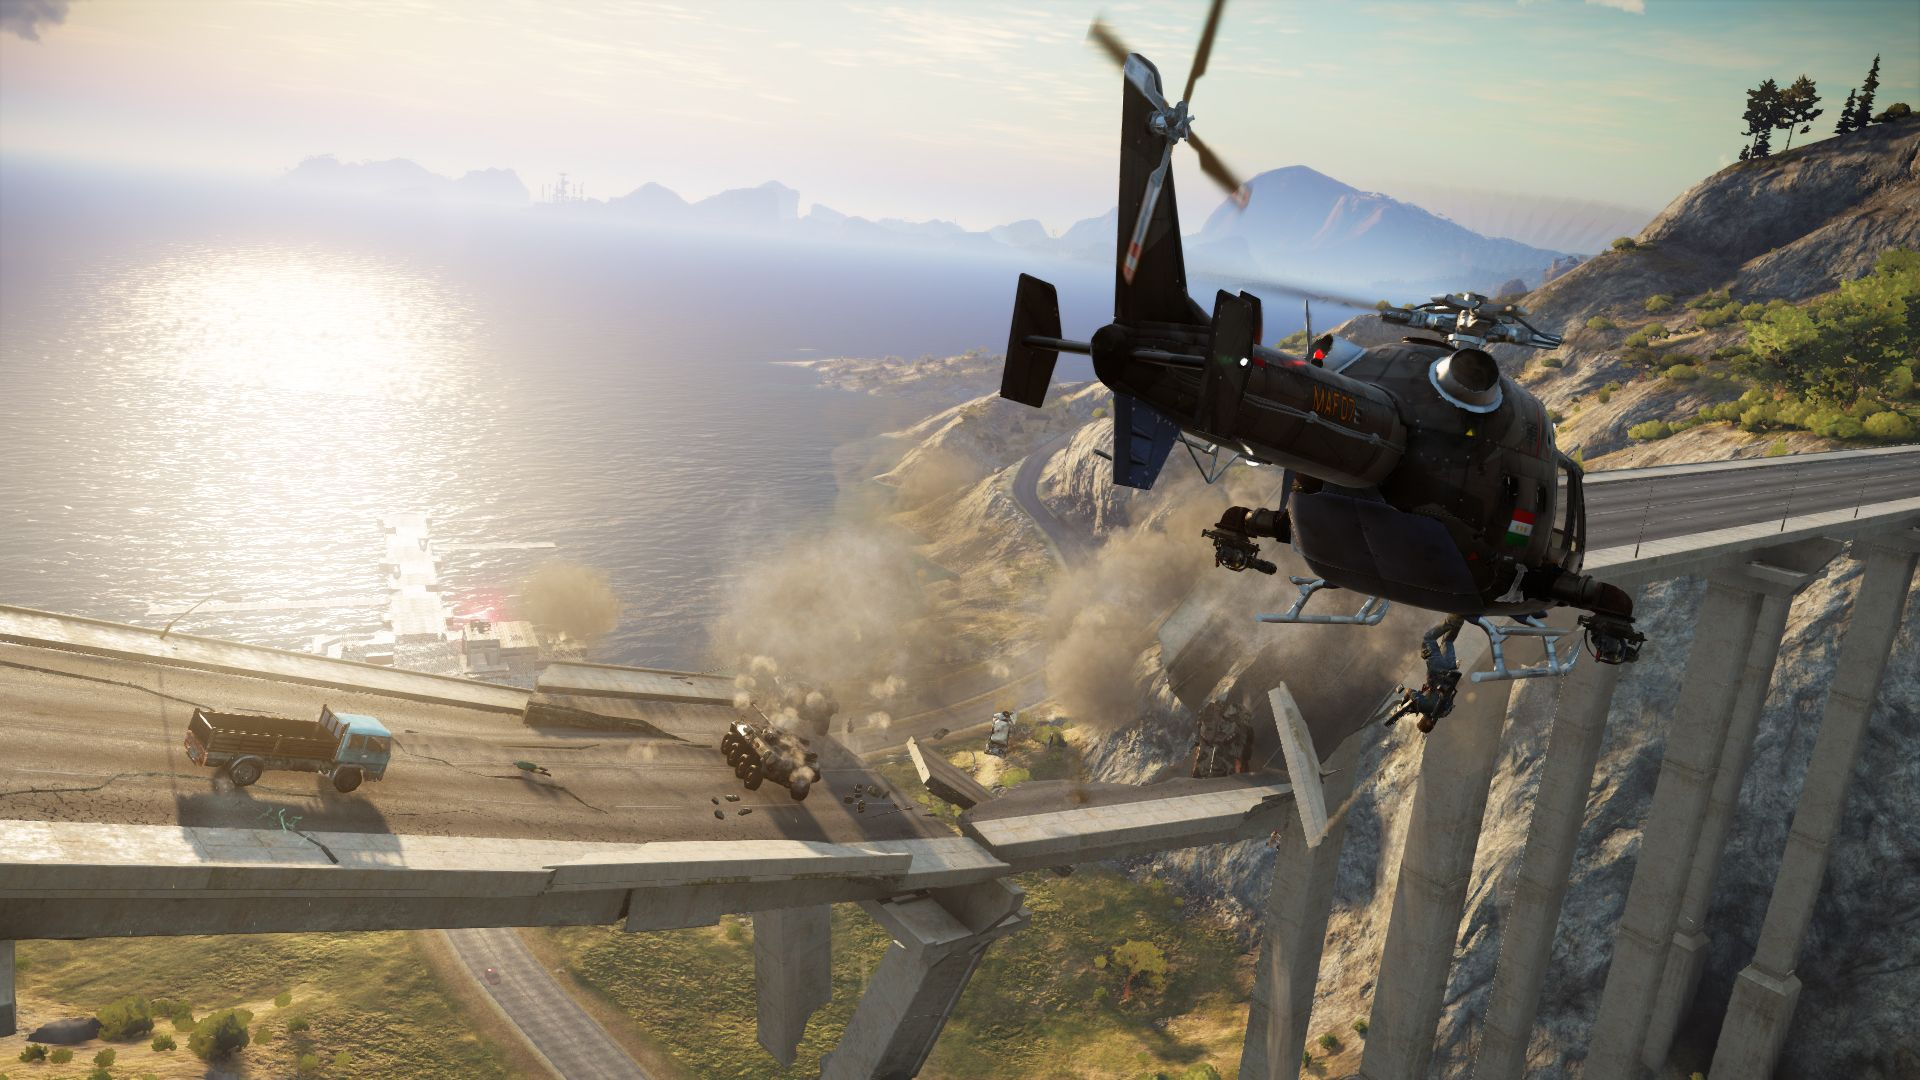 Just Cause 3 Wallpaper Google Zoeken Just Cause 3 Steam Pc Local Police Station